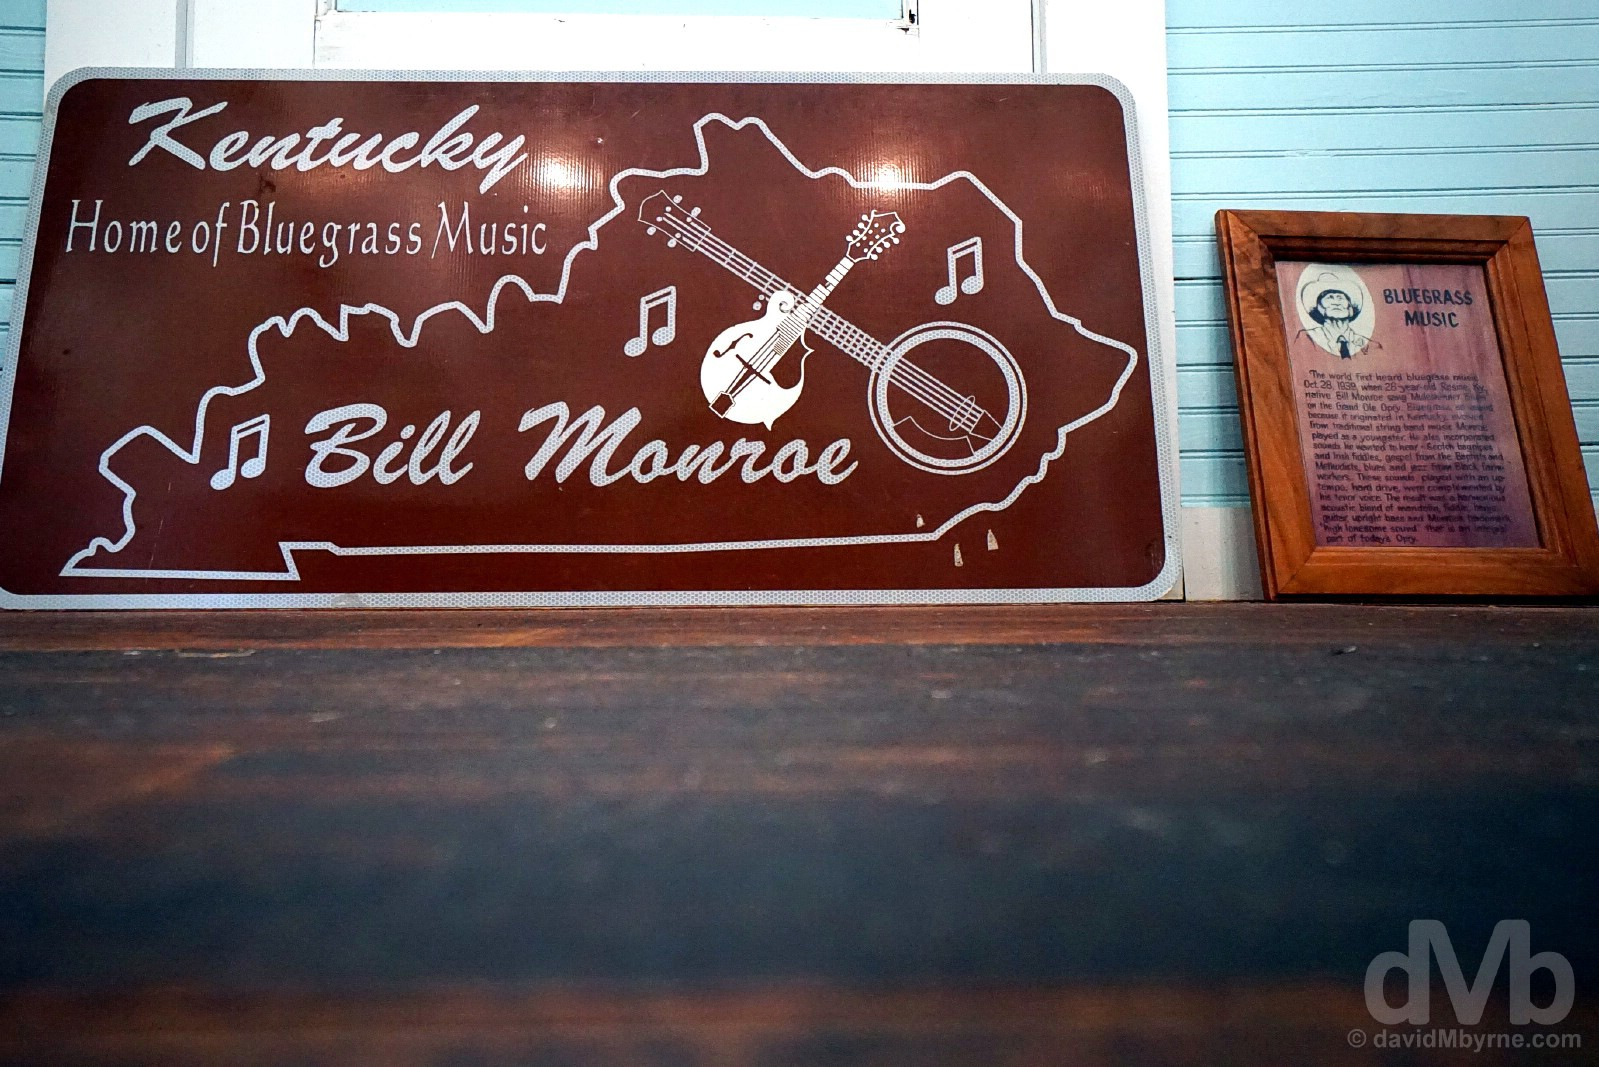 Bill Monroe's Old Homeplace on Pigeon Ridge in the hills over Rosine, Ohio County, Kentucky, USA. September 28, 2016.